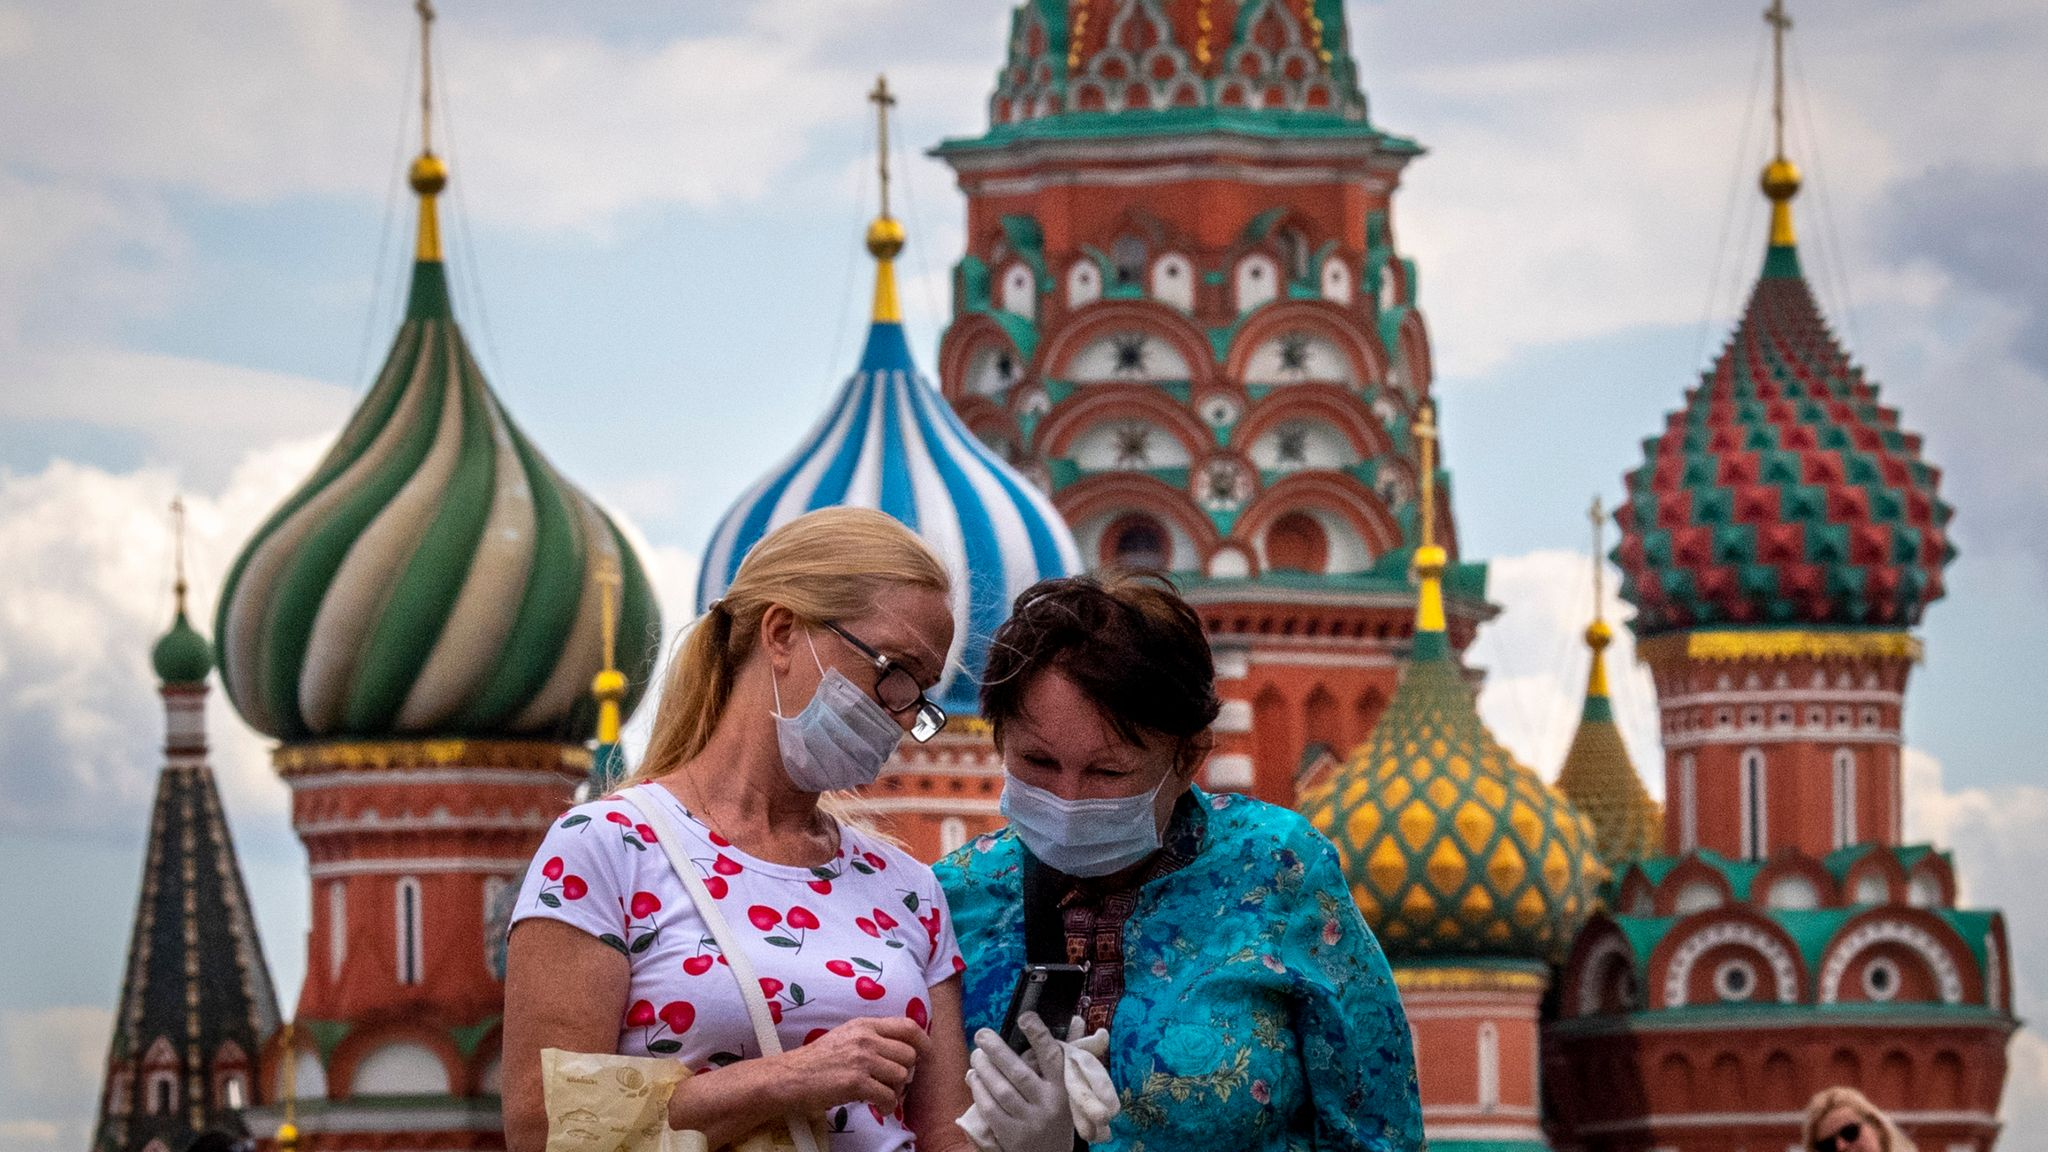 Traveling to Russia in pandemic